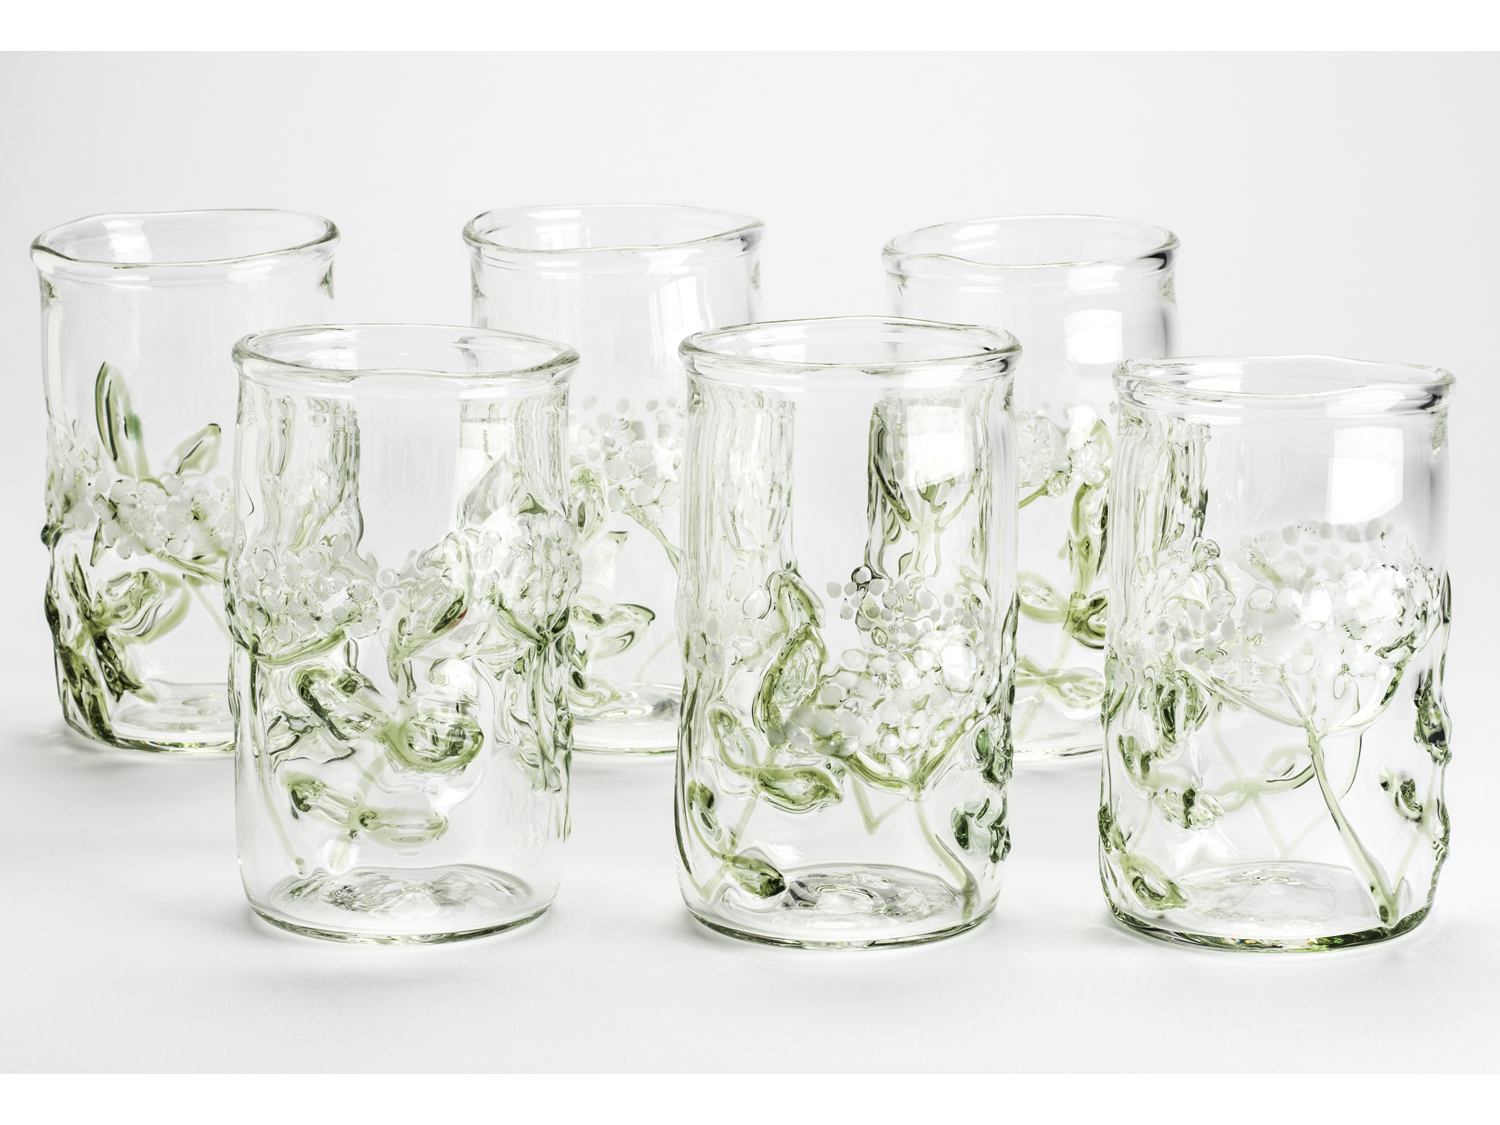 hand blown tumbler glasses